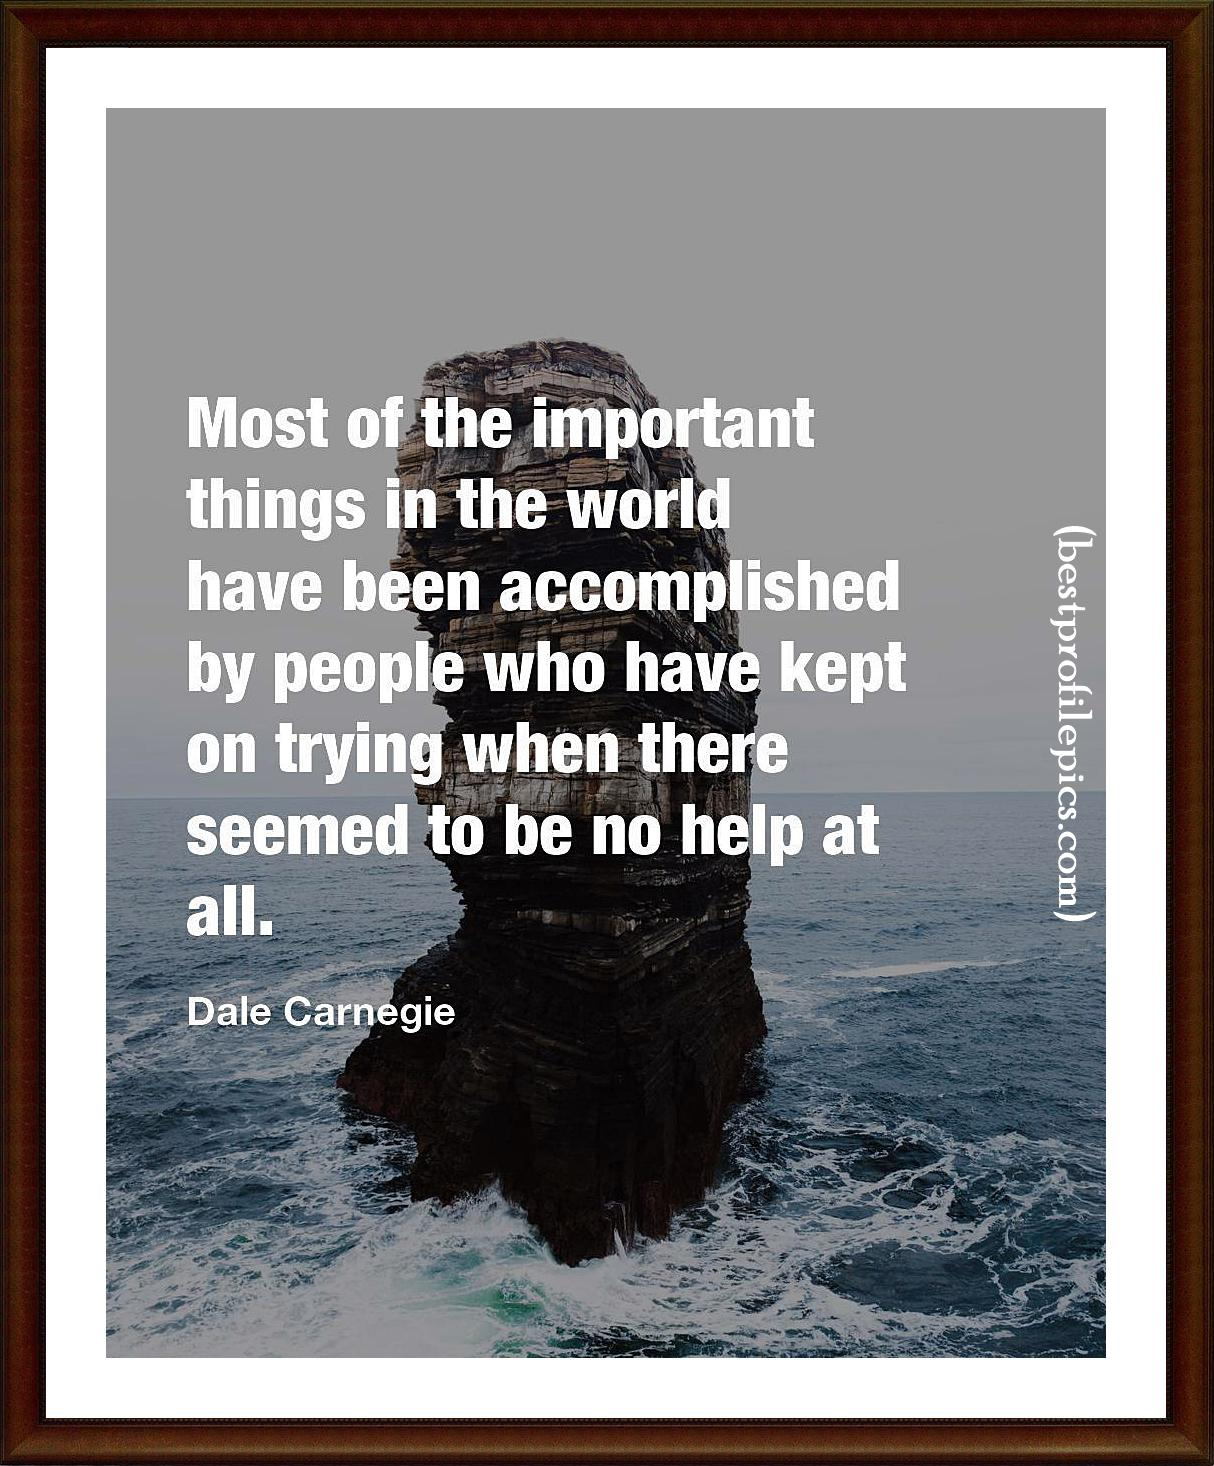 dale carnegie quotes keep trying